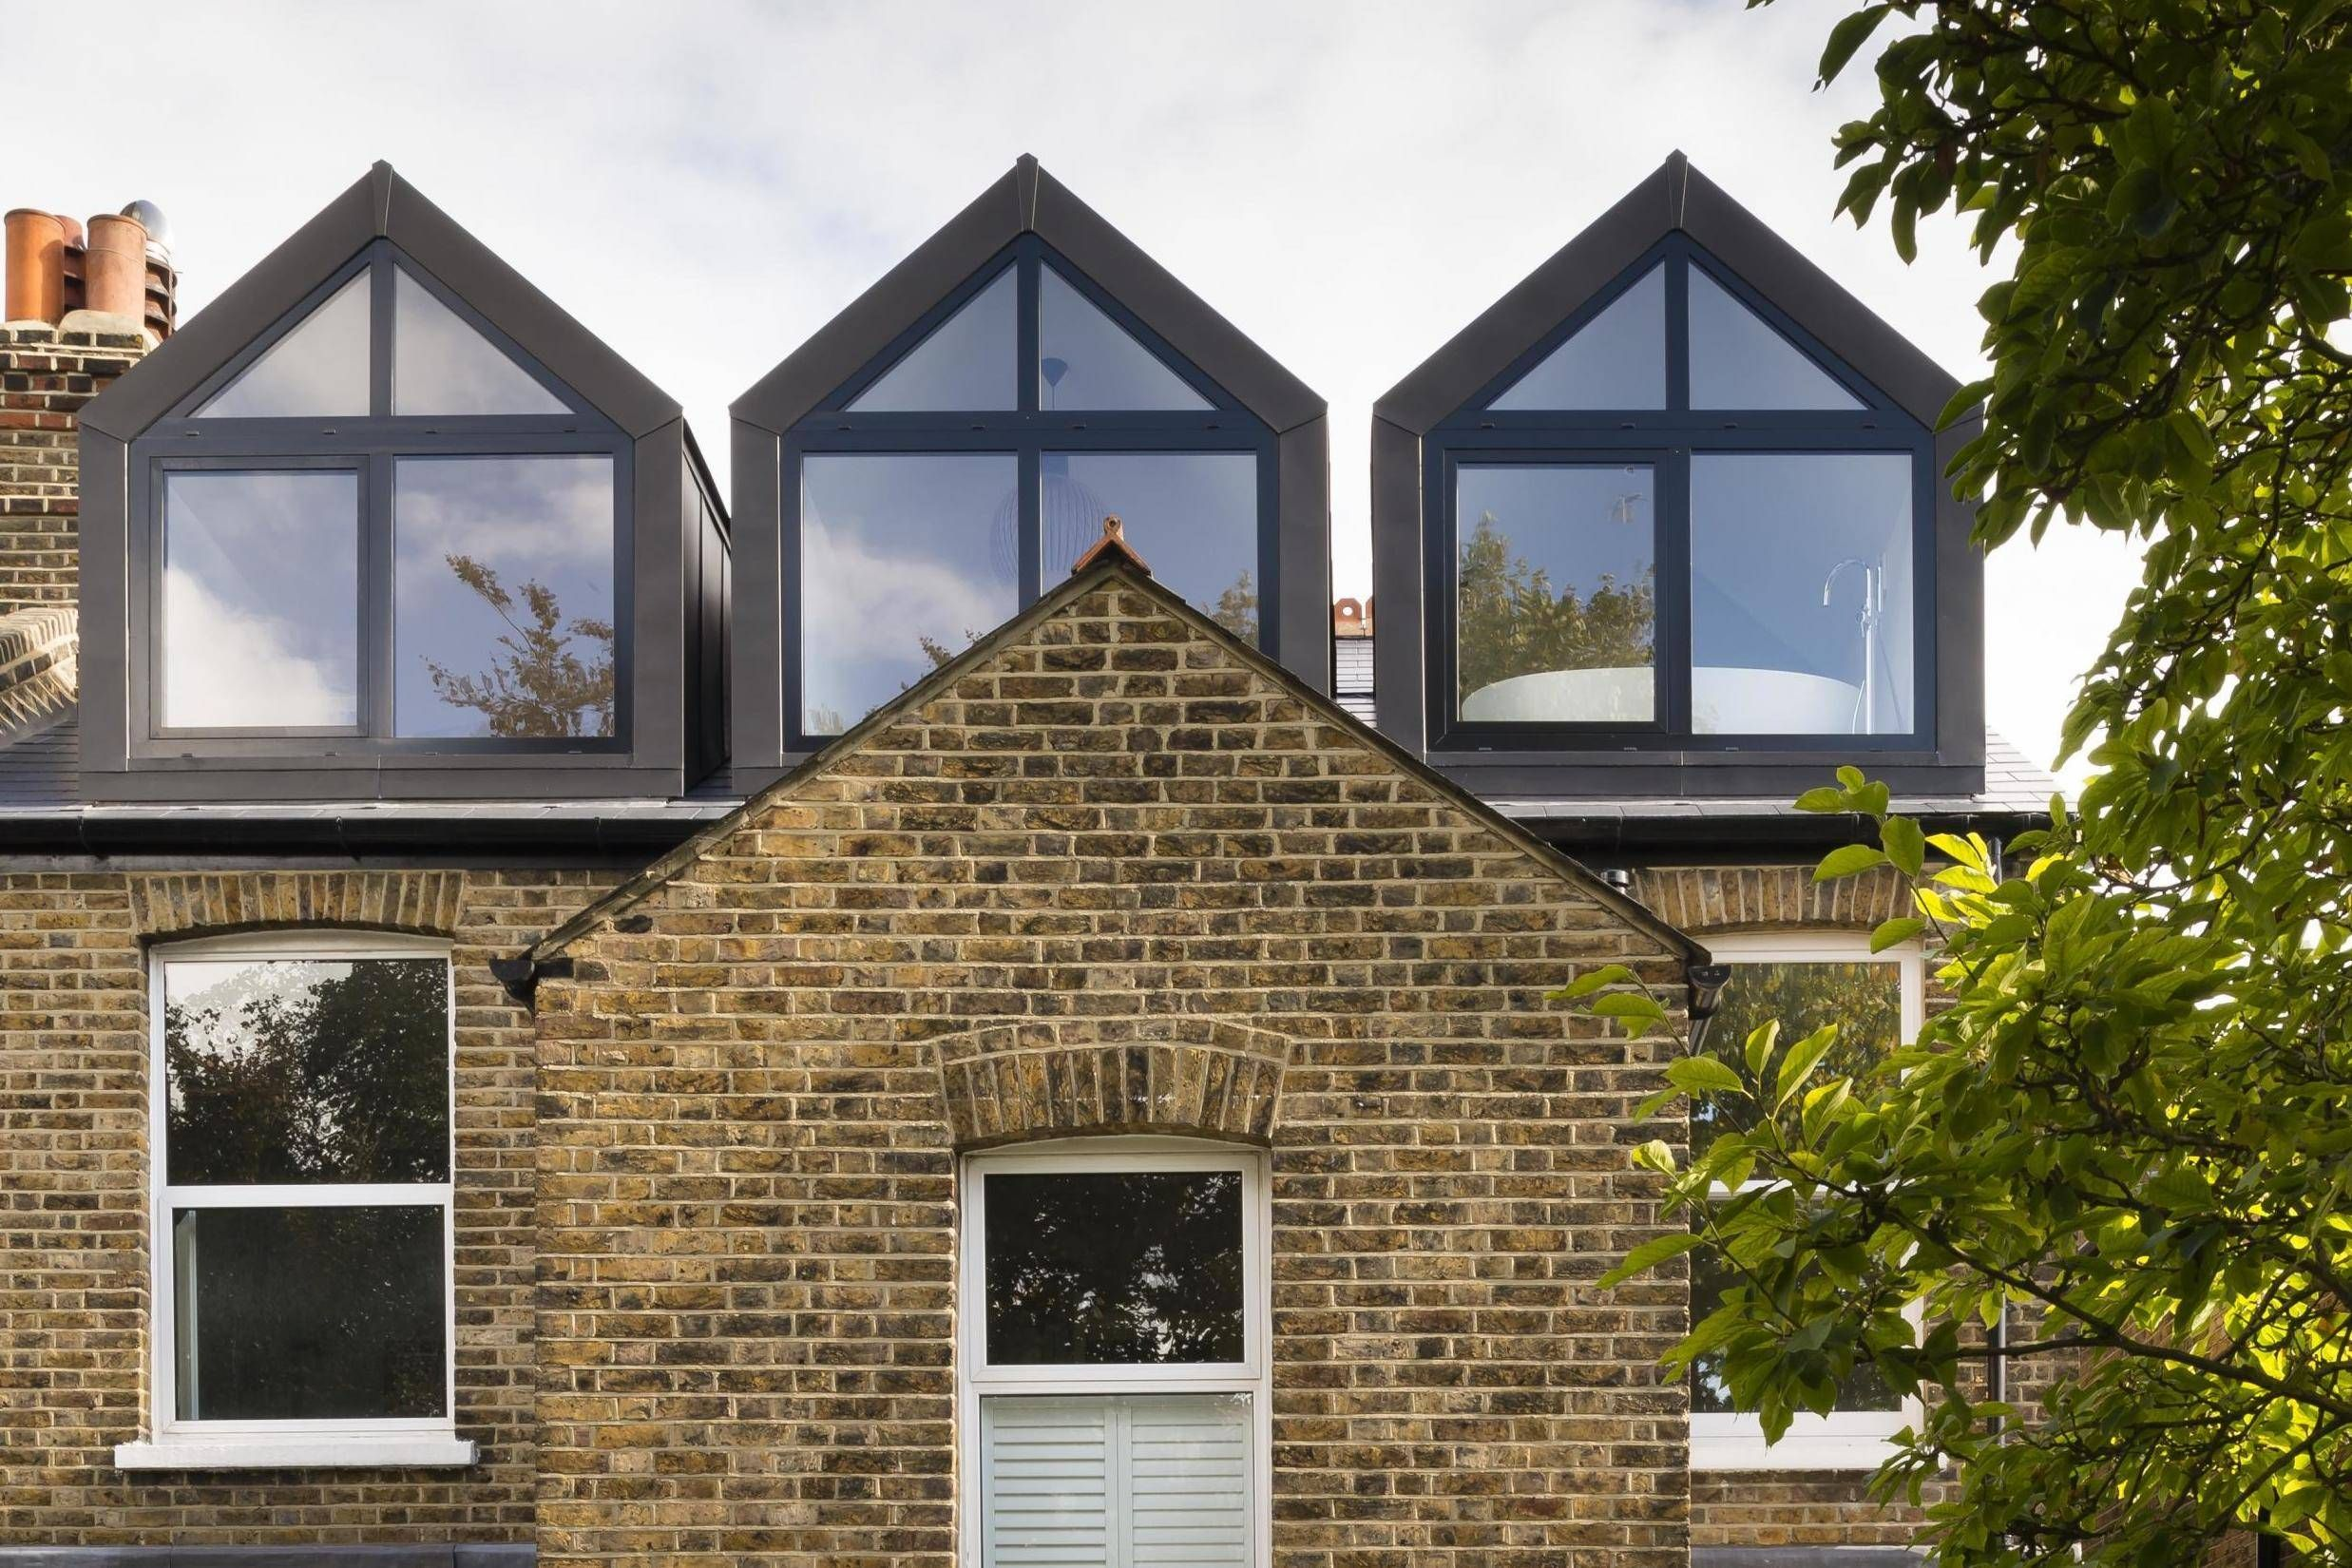 How To Build A Loft Extension Without The Need For Planning Permission With Images Loft Conversion Victorian Terrace Old Victorian Homes Planning Permission